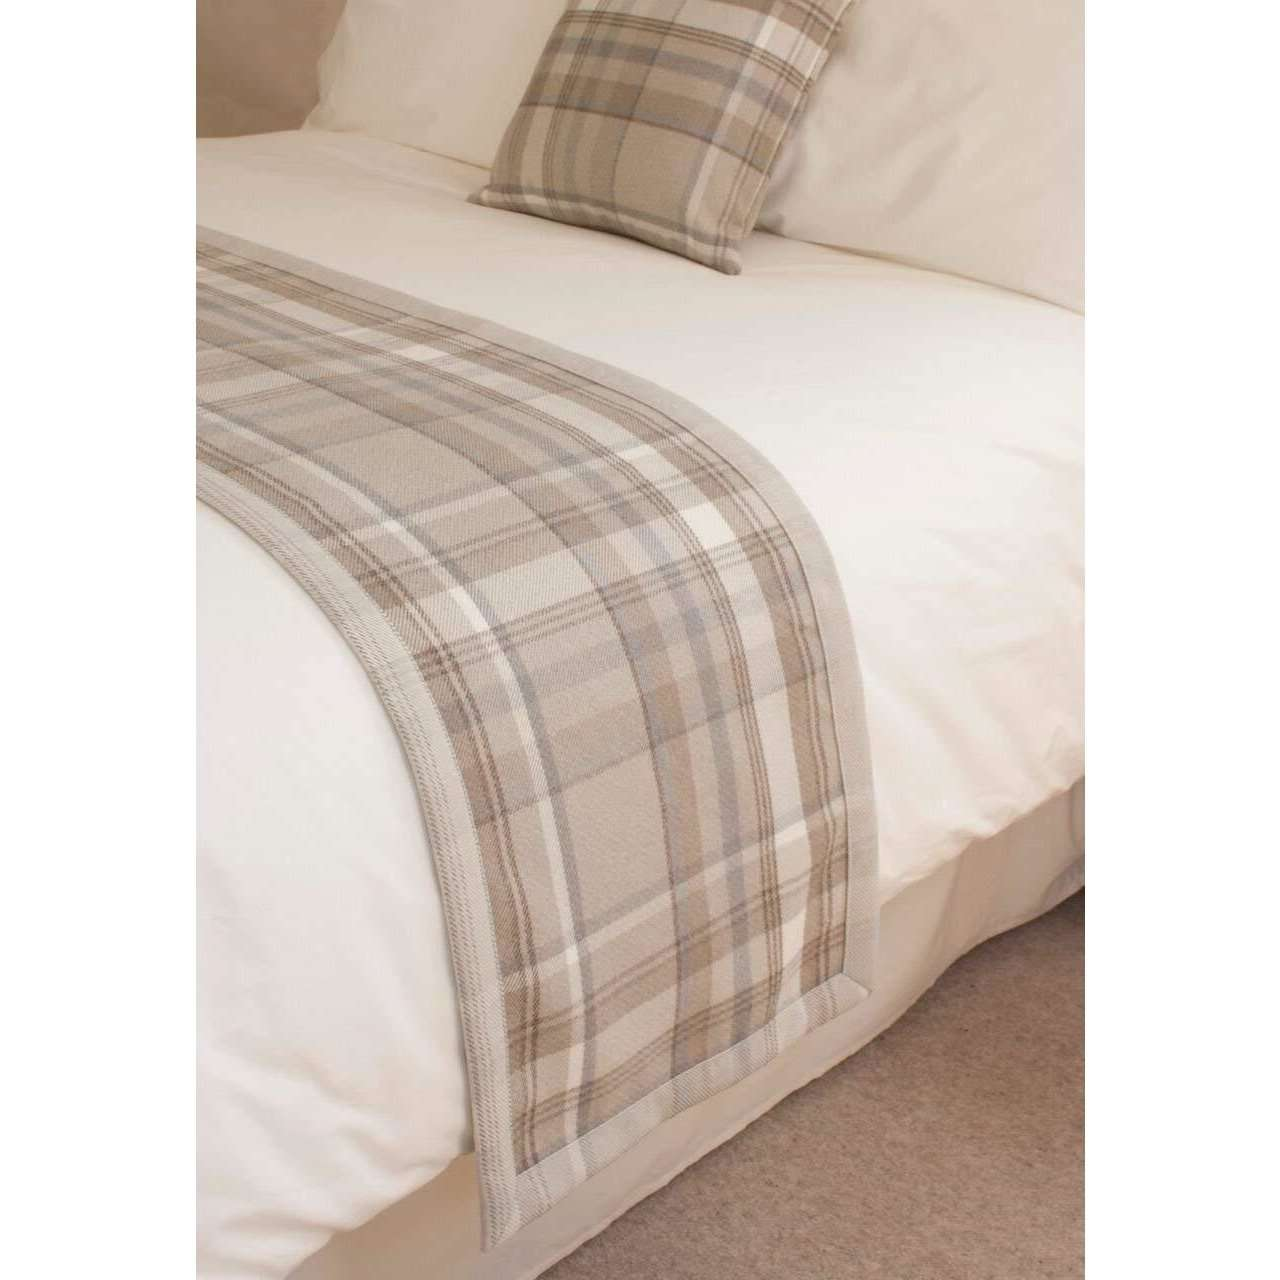 McAlister Textiles Heritage Beige Cream Tartan 43cm x 43cm Cushion Sets Cushions and Covers